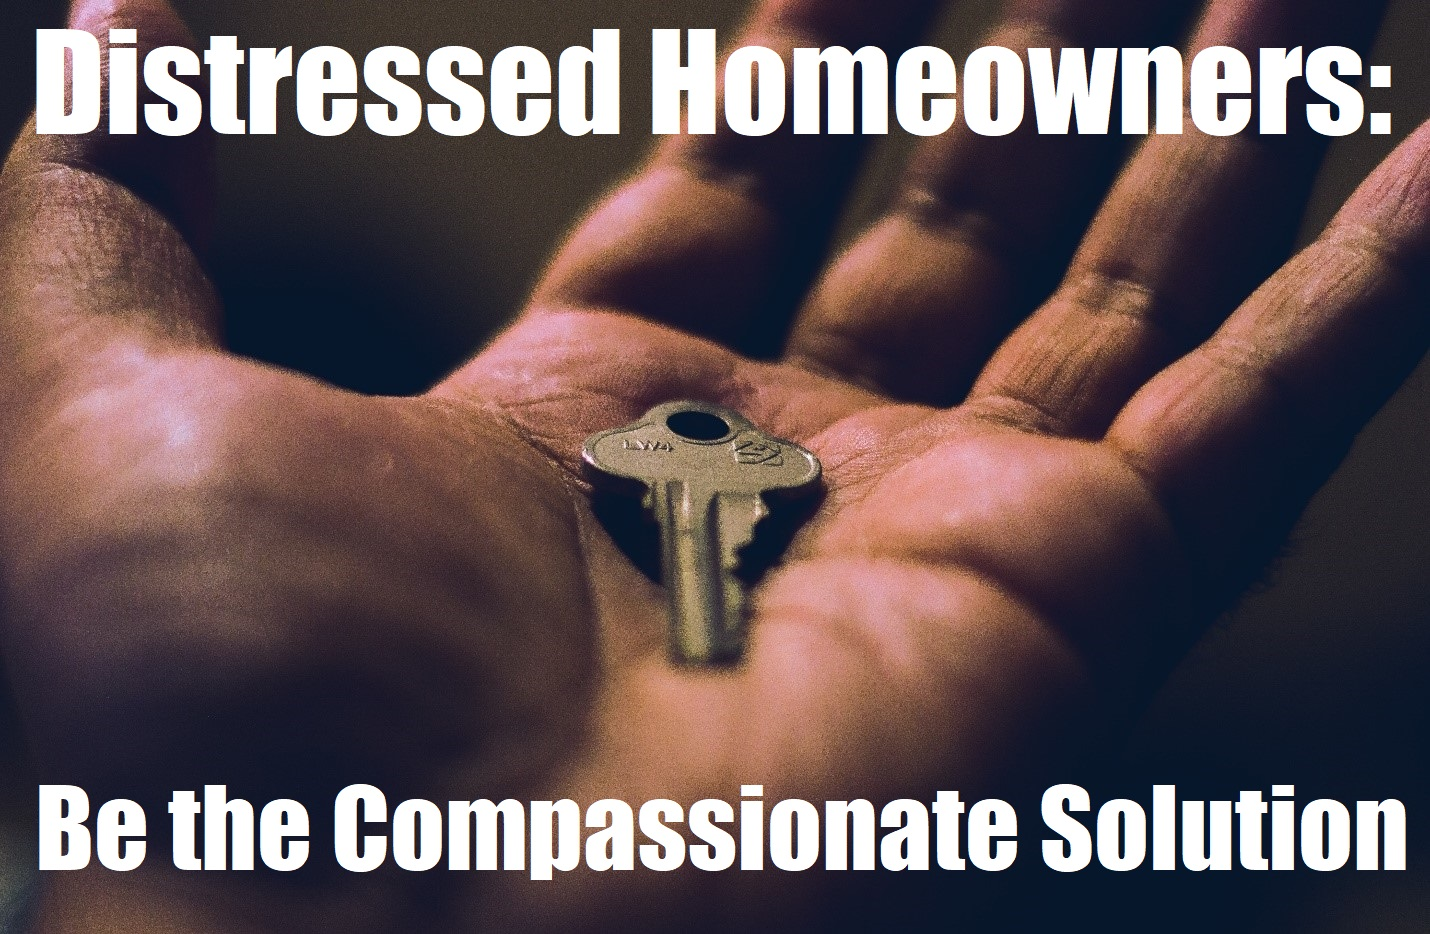 Distressed Homeowners: Be the Compassionate Solution